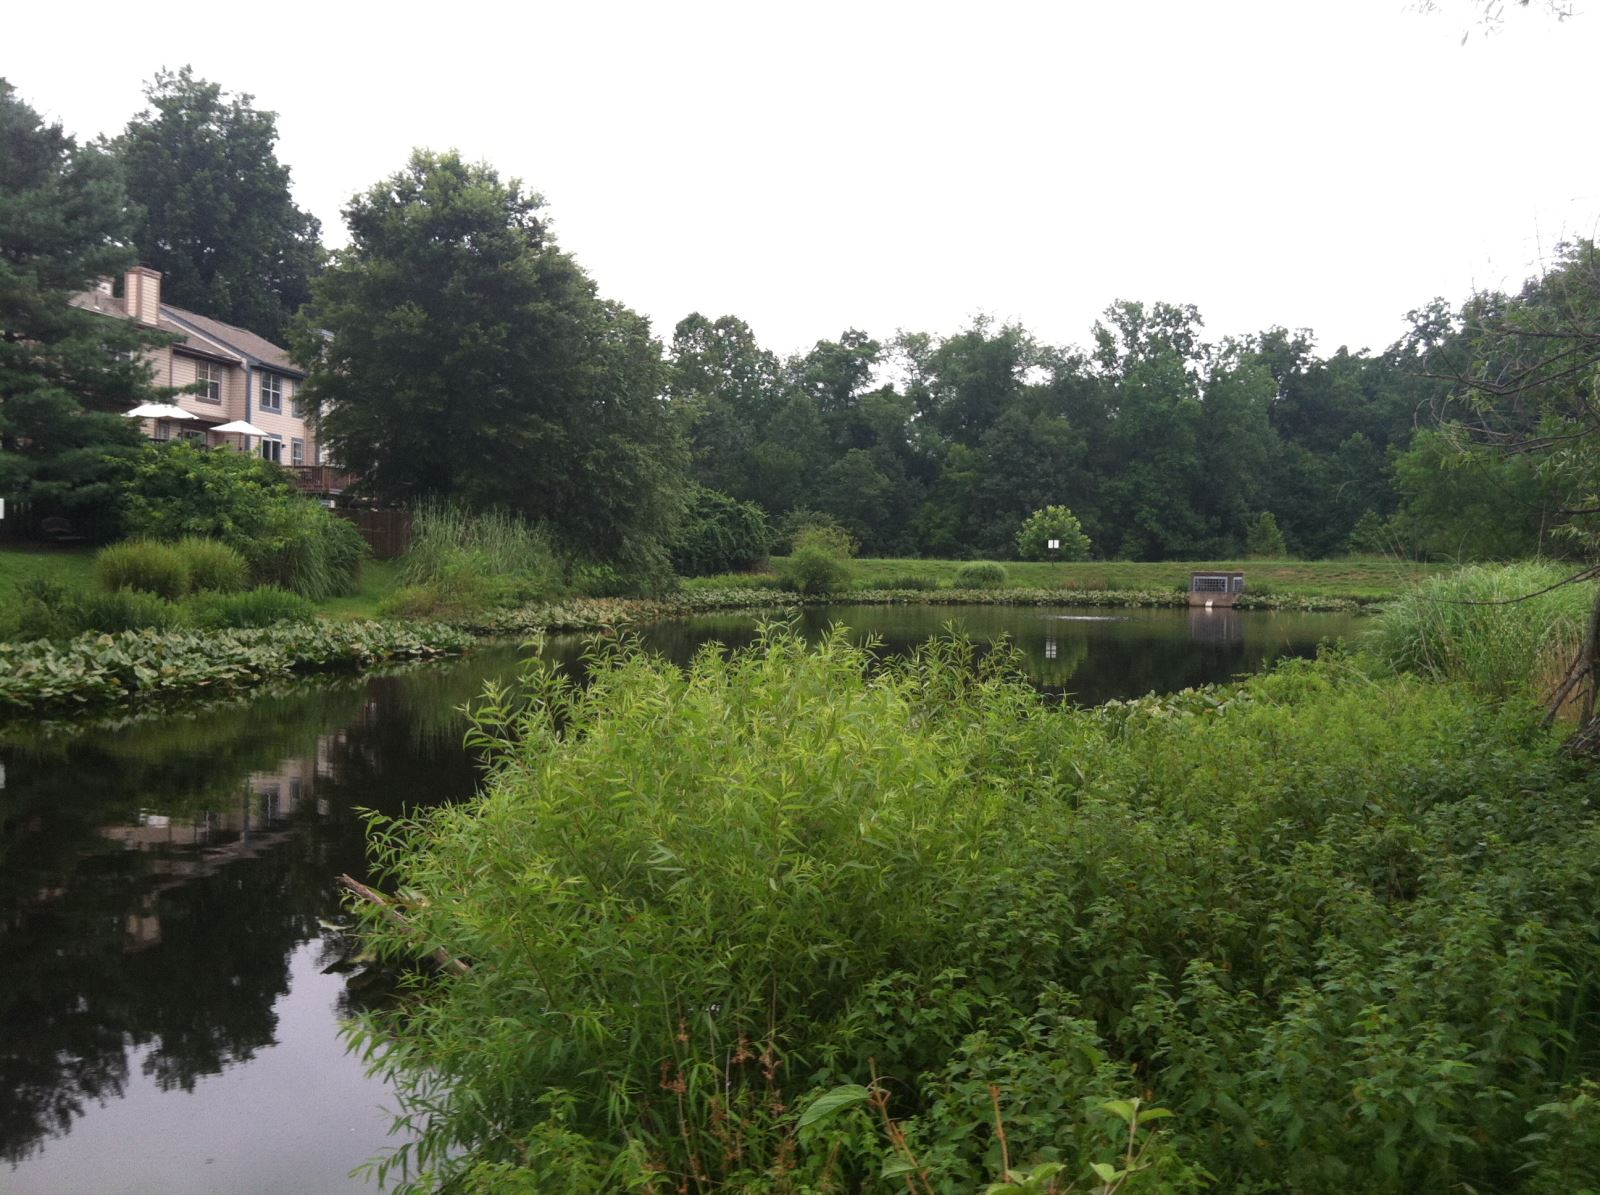 Image of Stormwater Pond